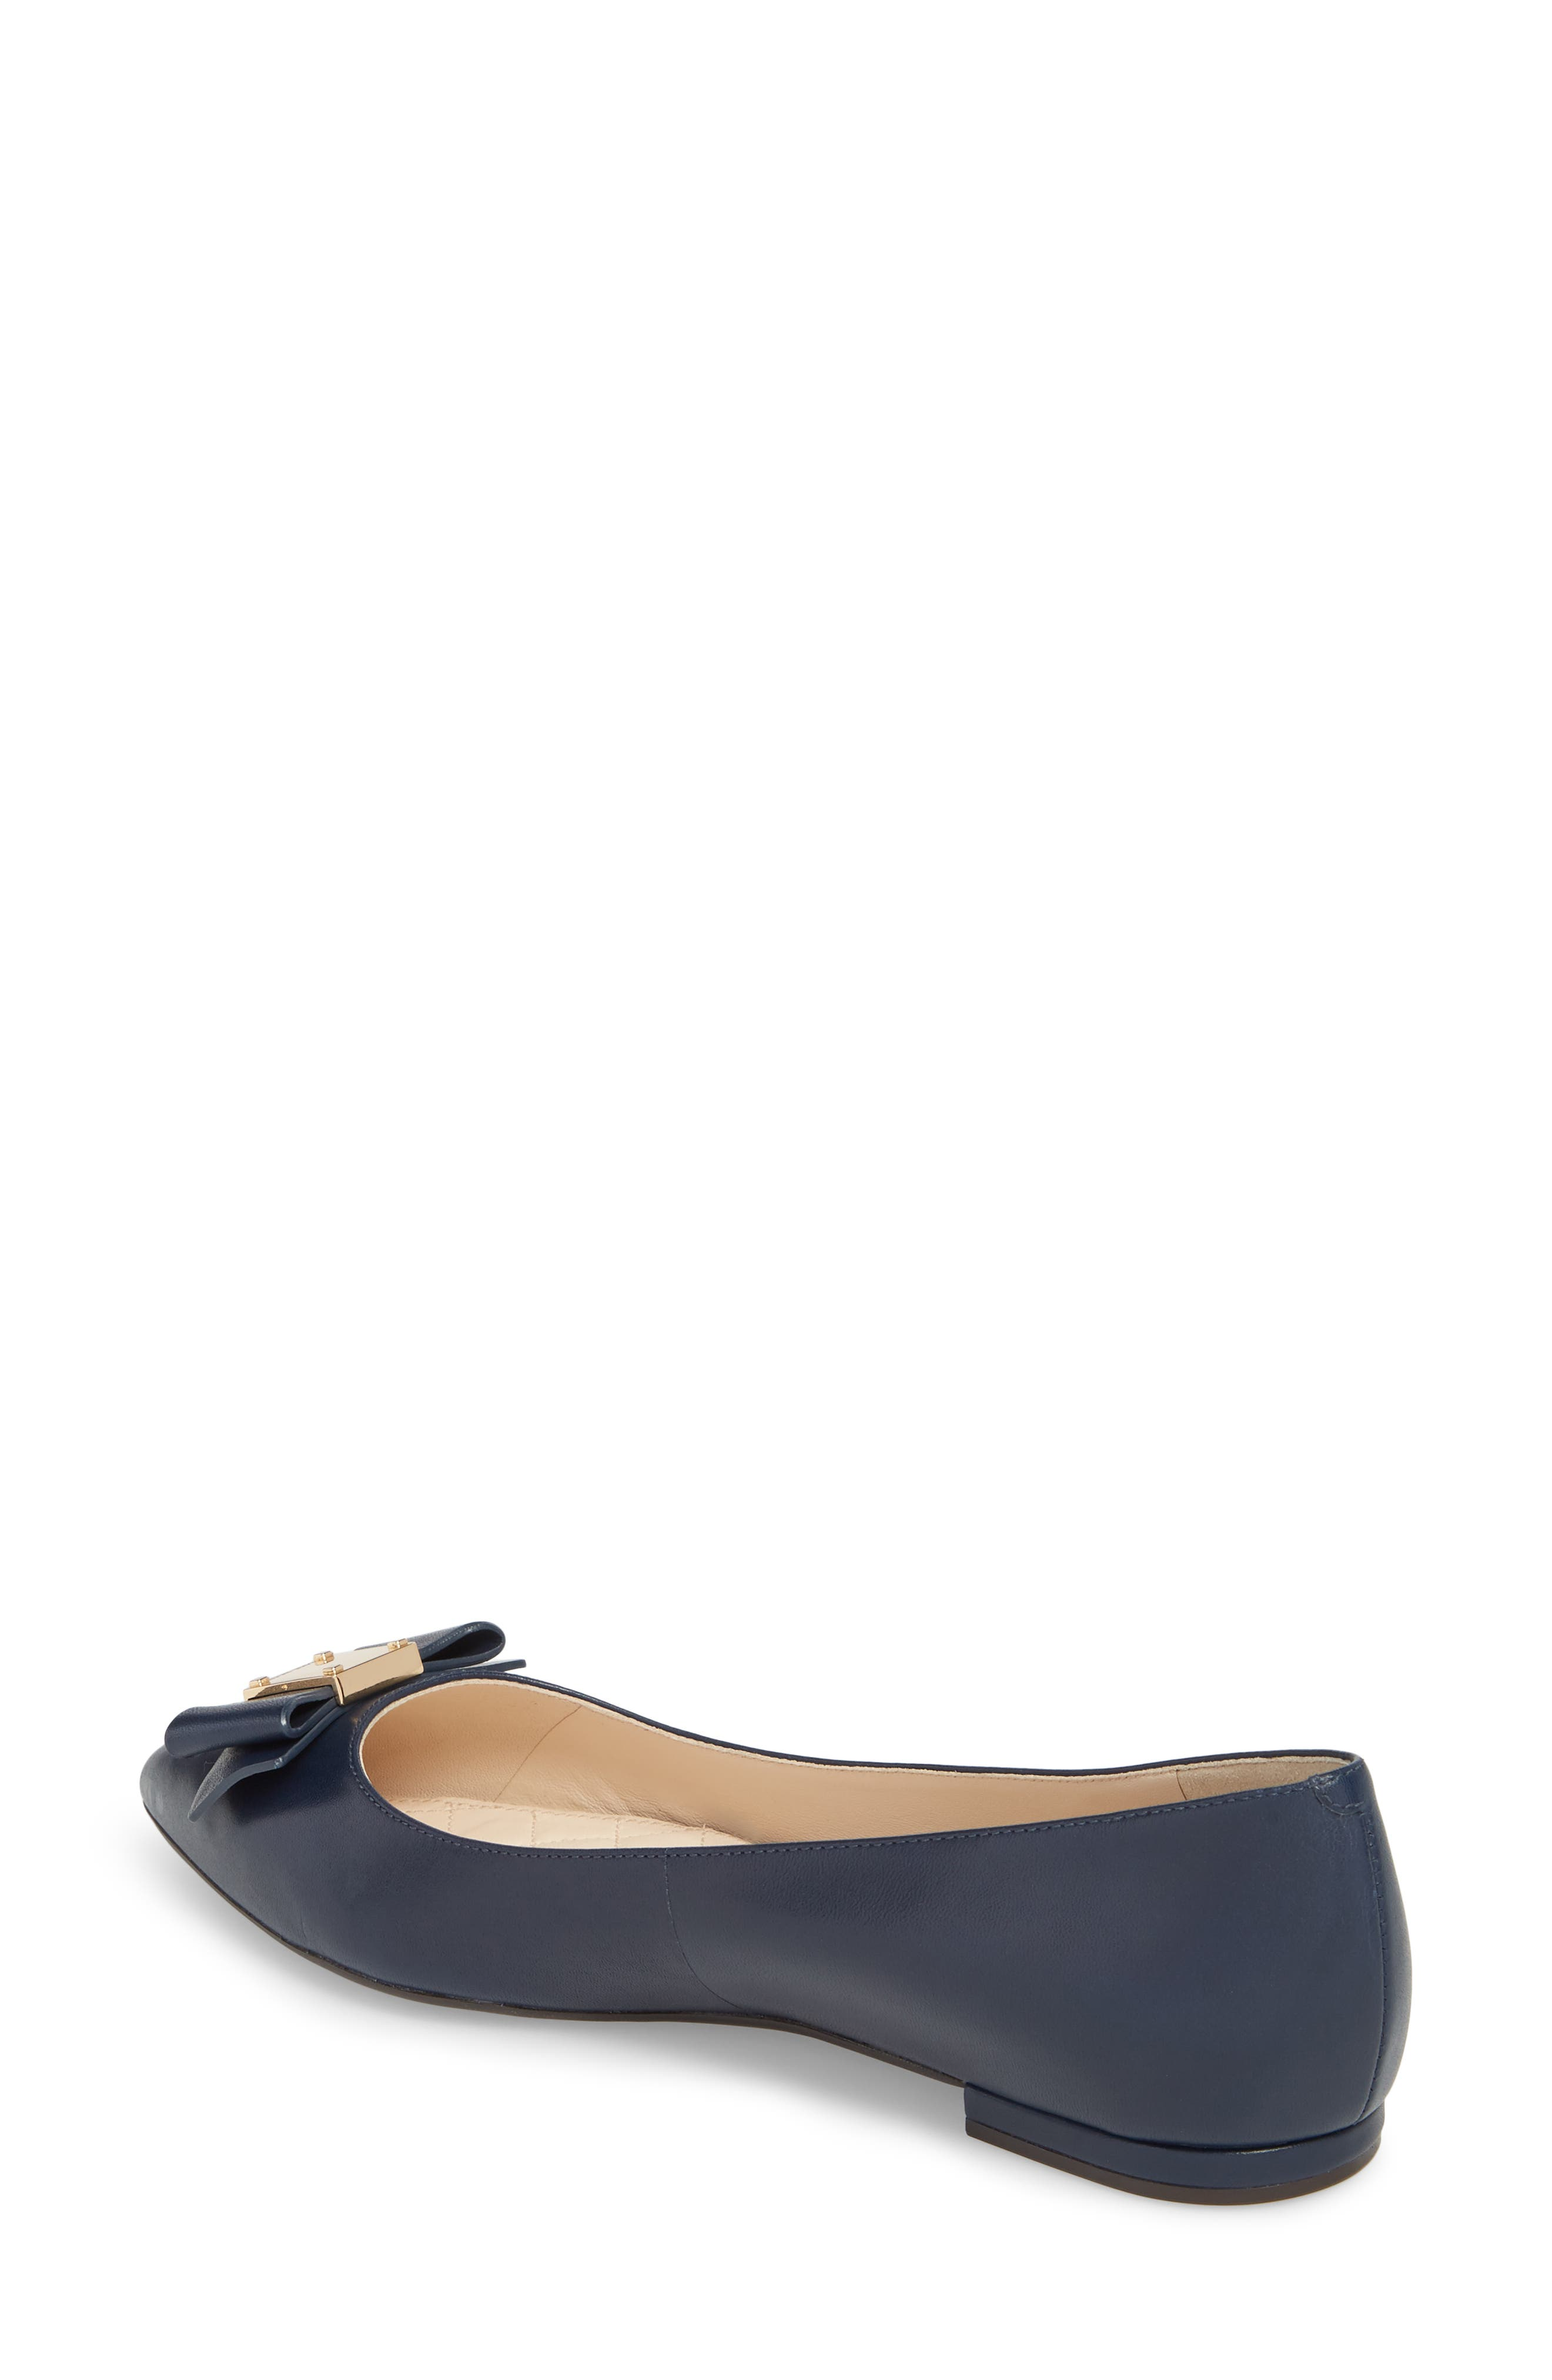 COLE HAAN,                             Tali Bow Skimmer Flat,                             Alternate thumbnail 2, color,                             400